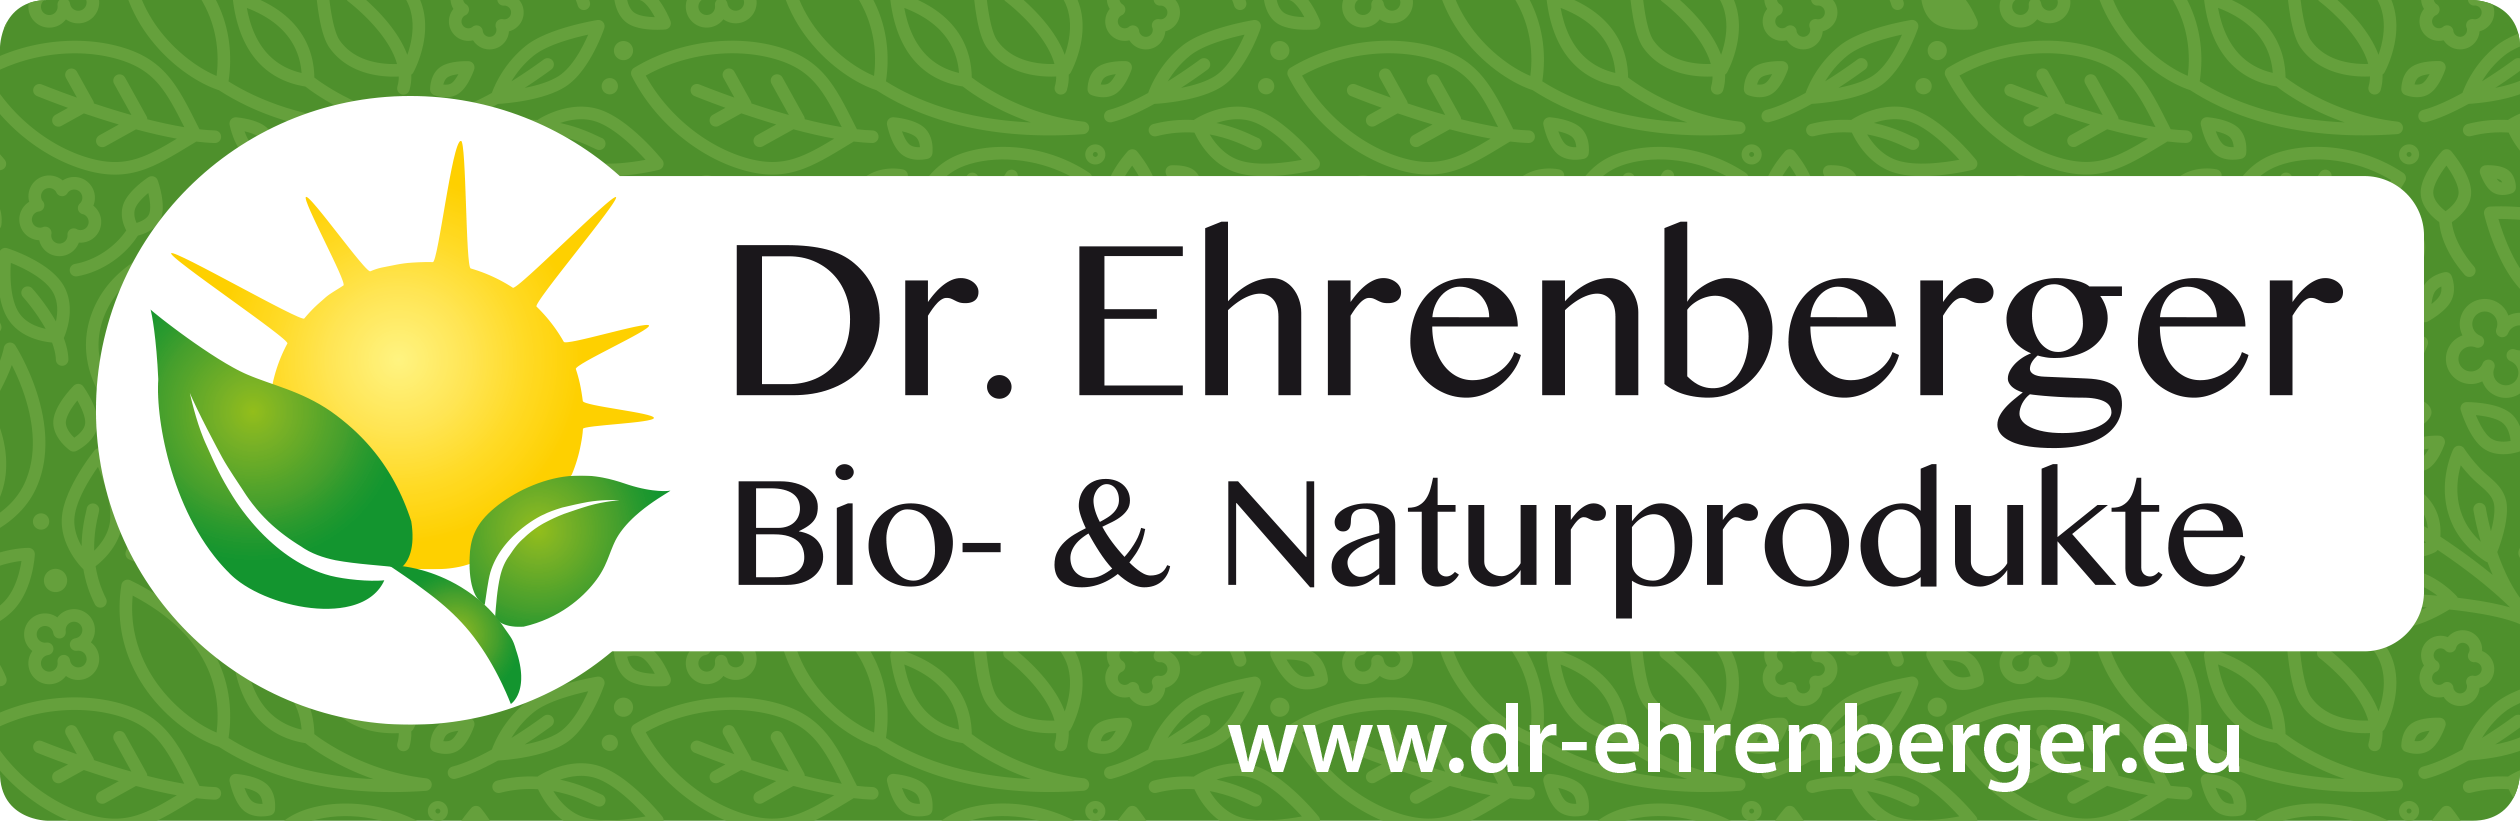 Dr. Ehrenberger Synthese GmbH